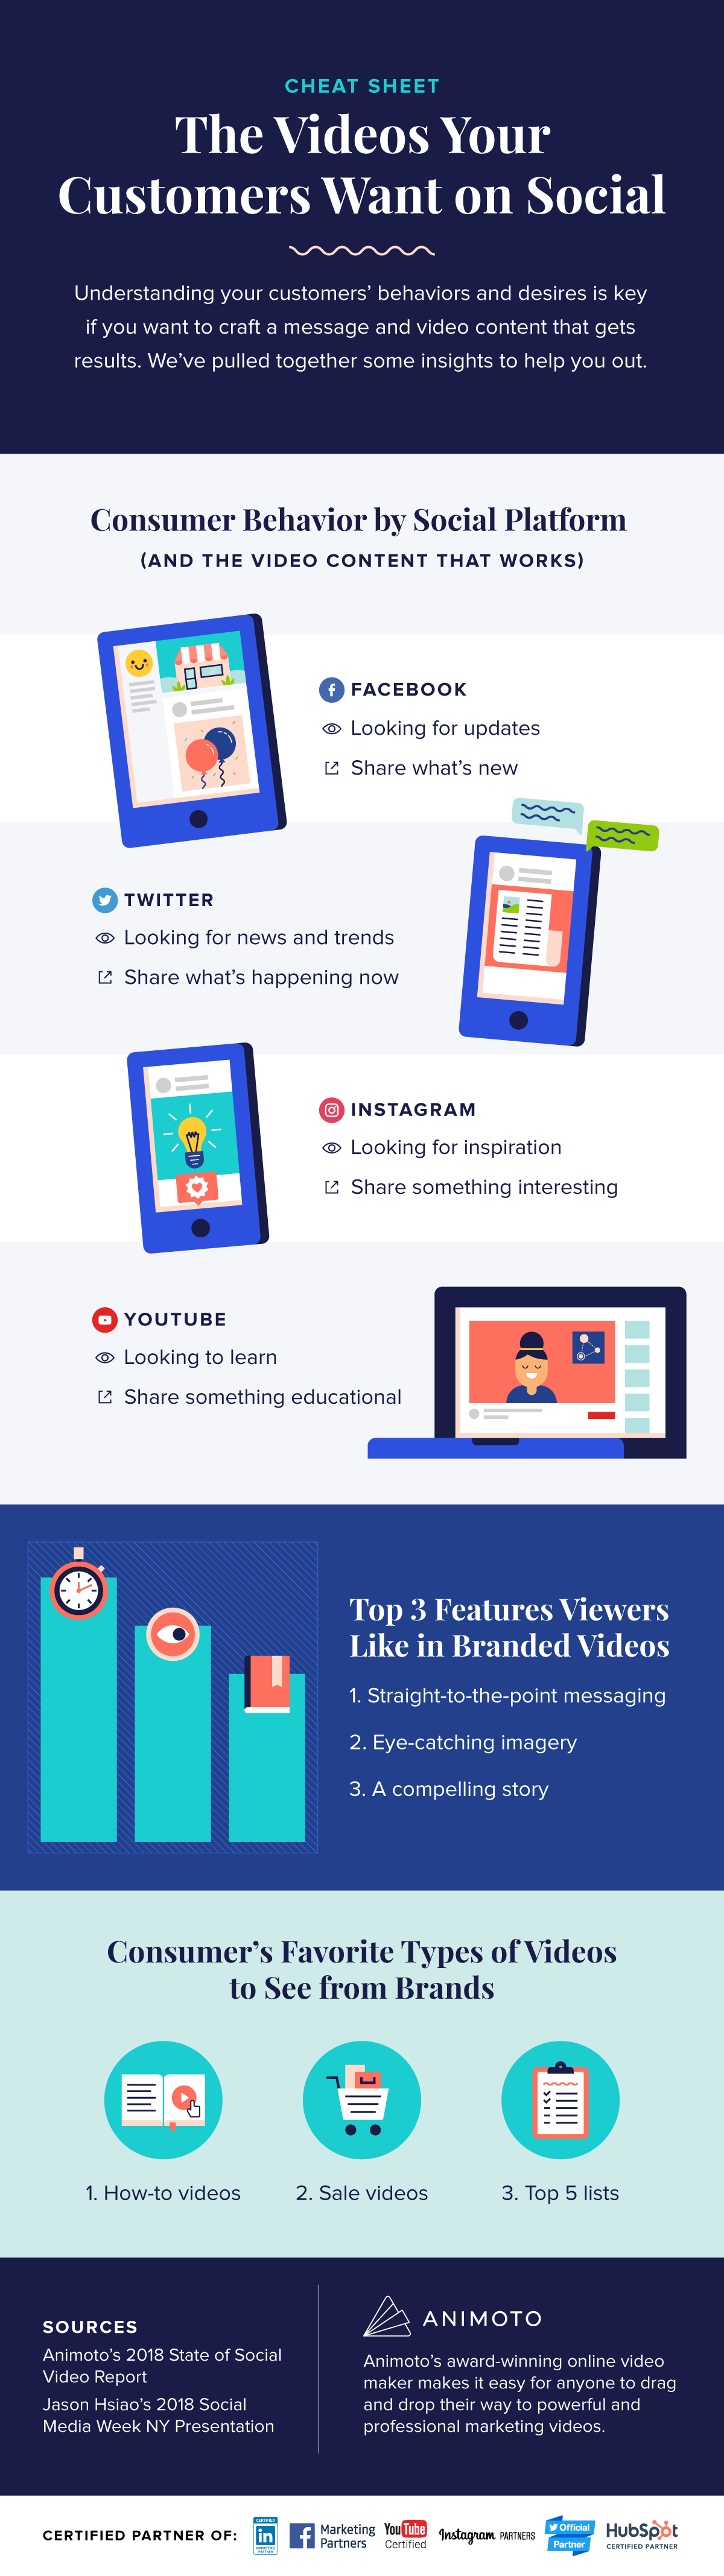 The Videos Your Customers Want on Social